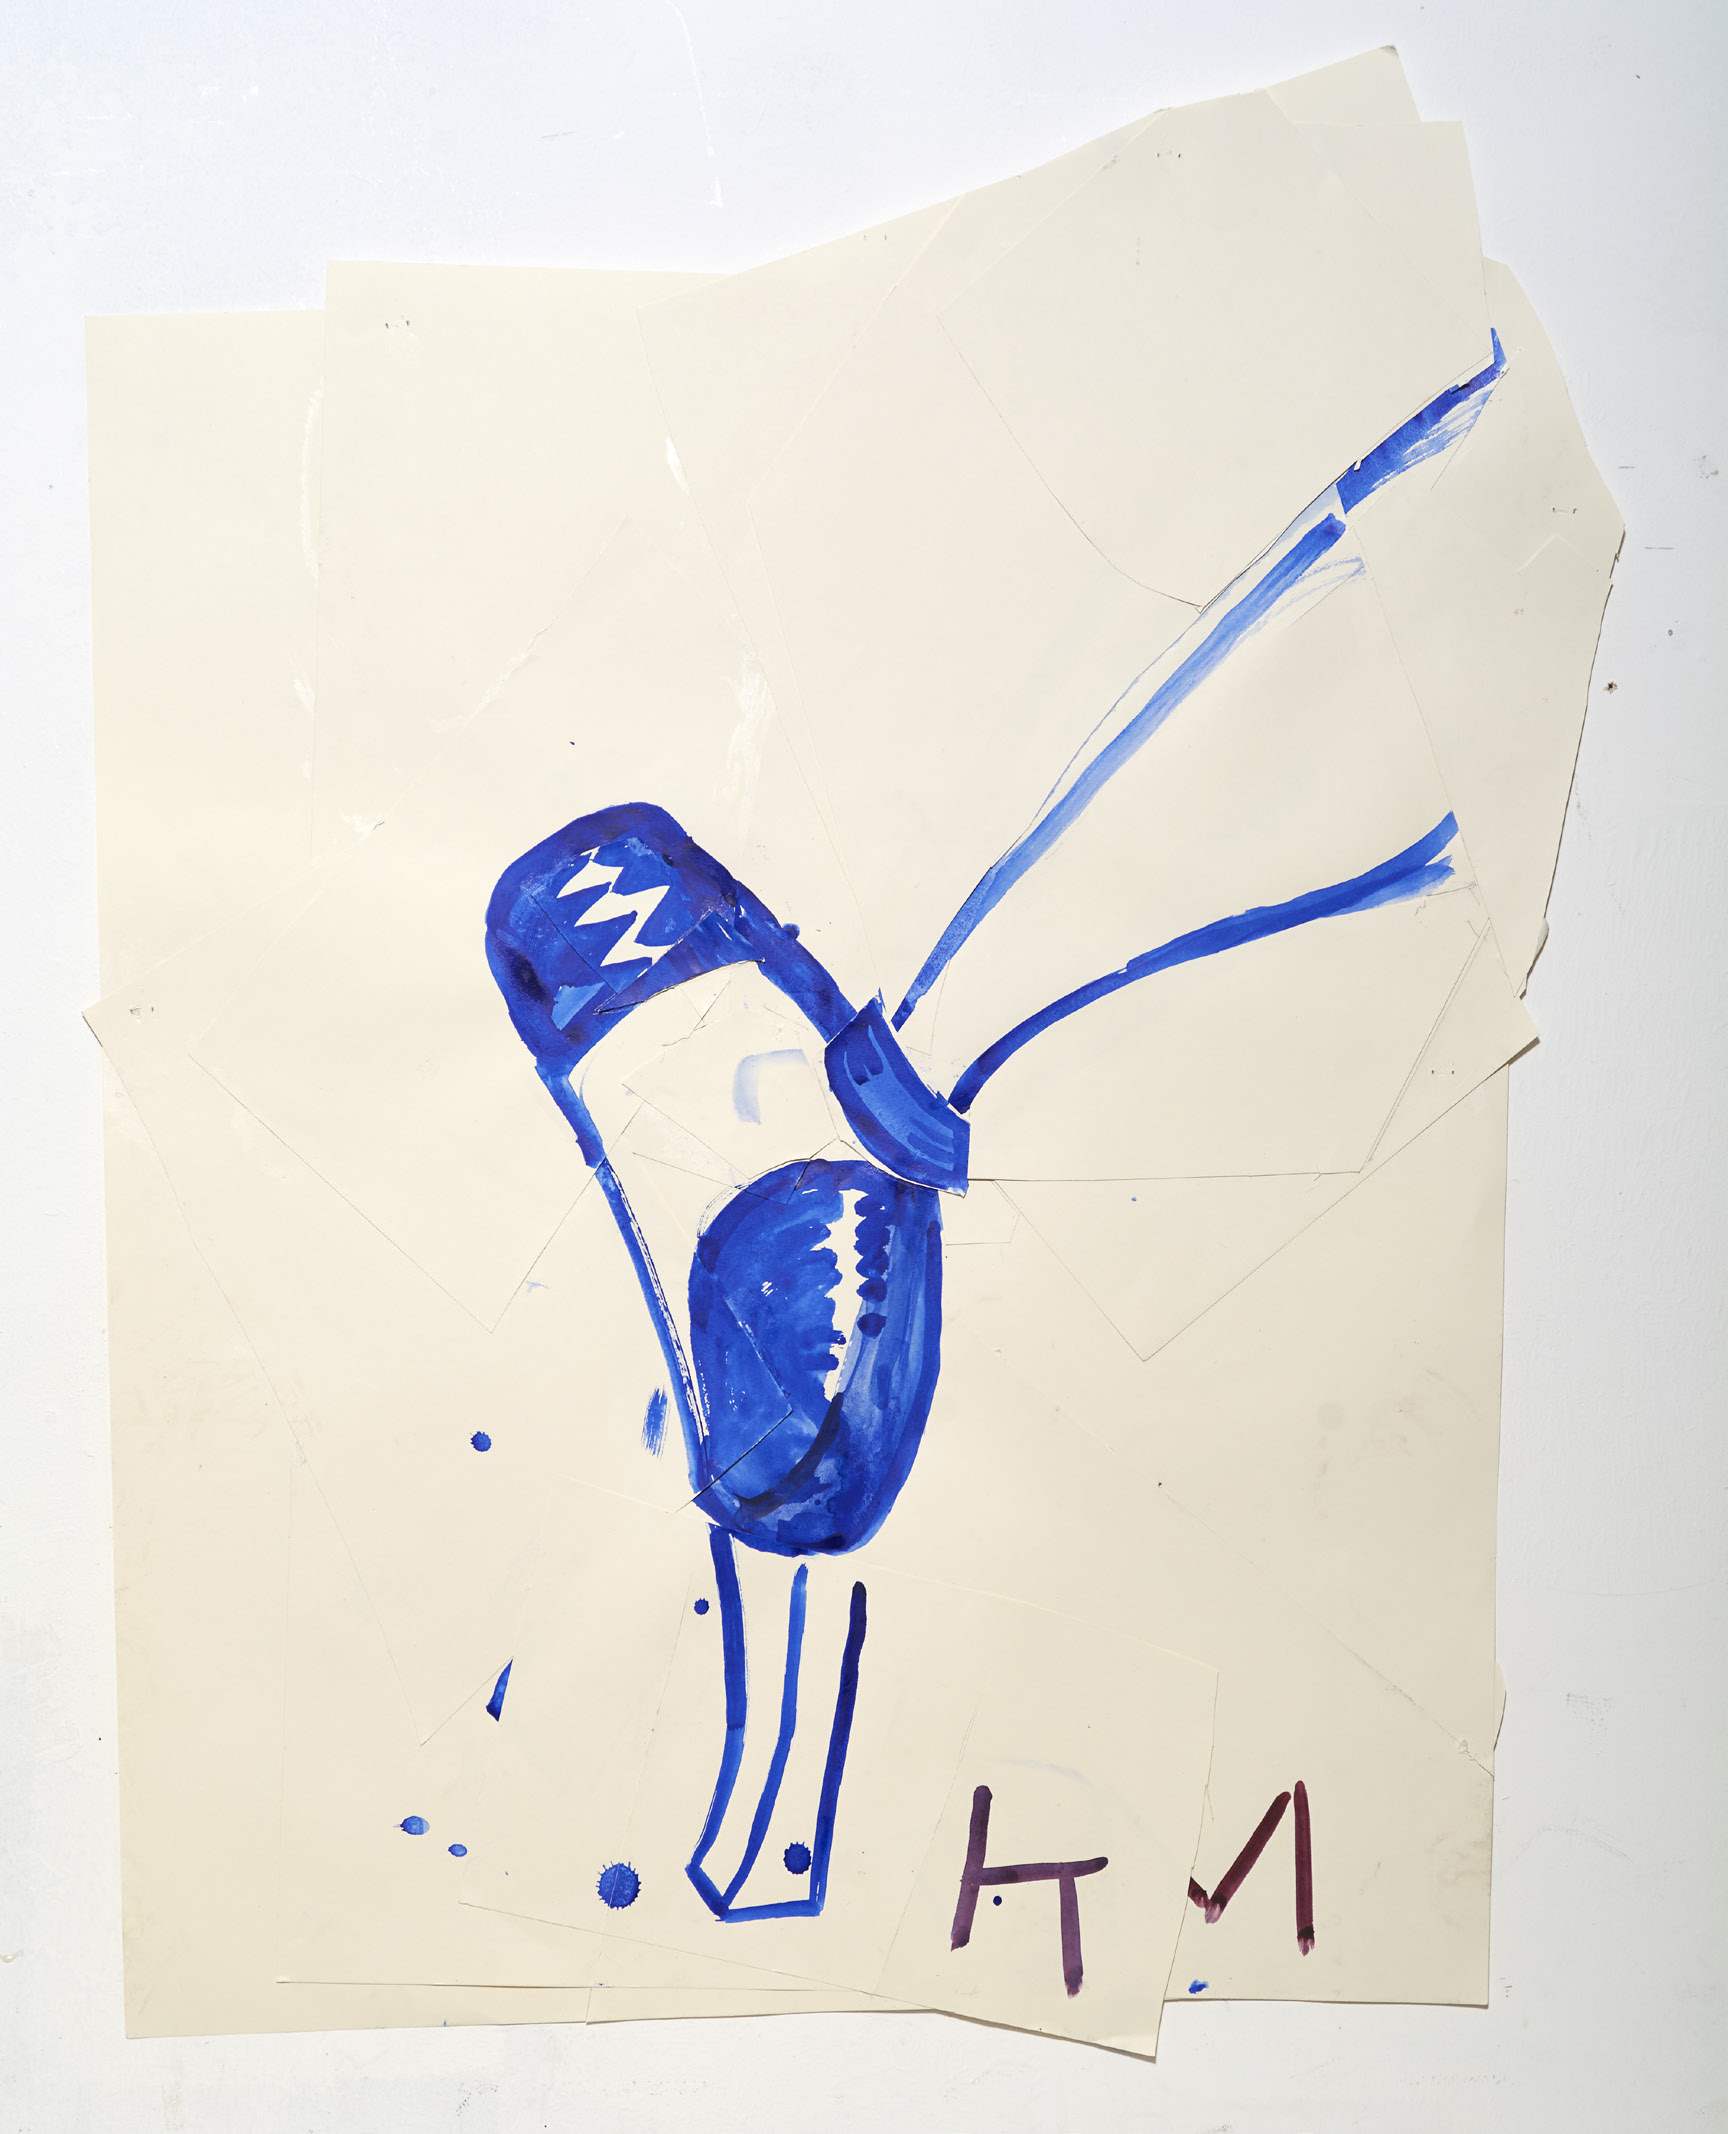 Rose Wylie - Blue Shoe with Shine (KM)